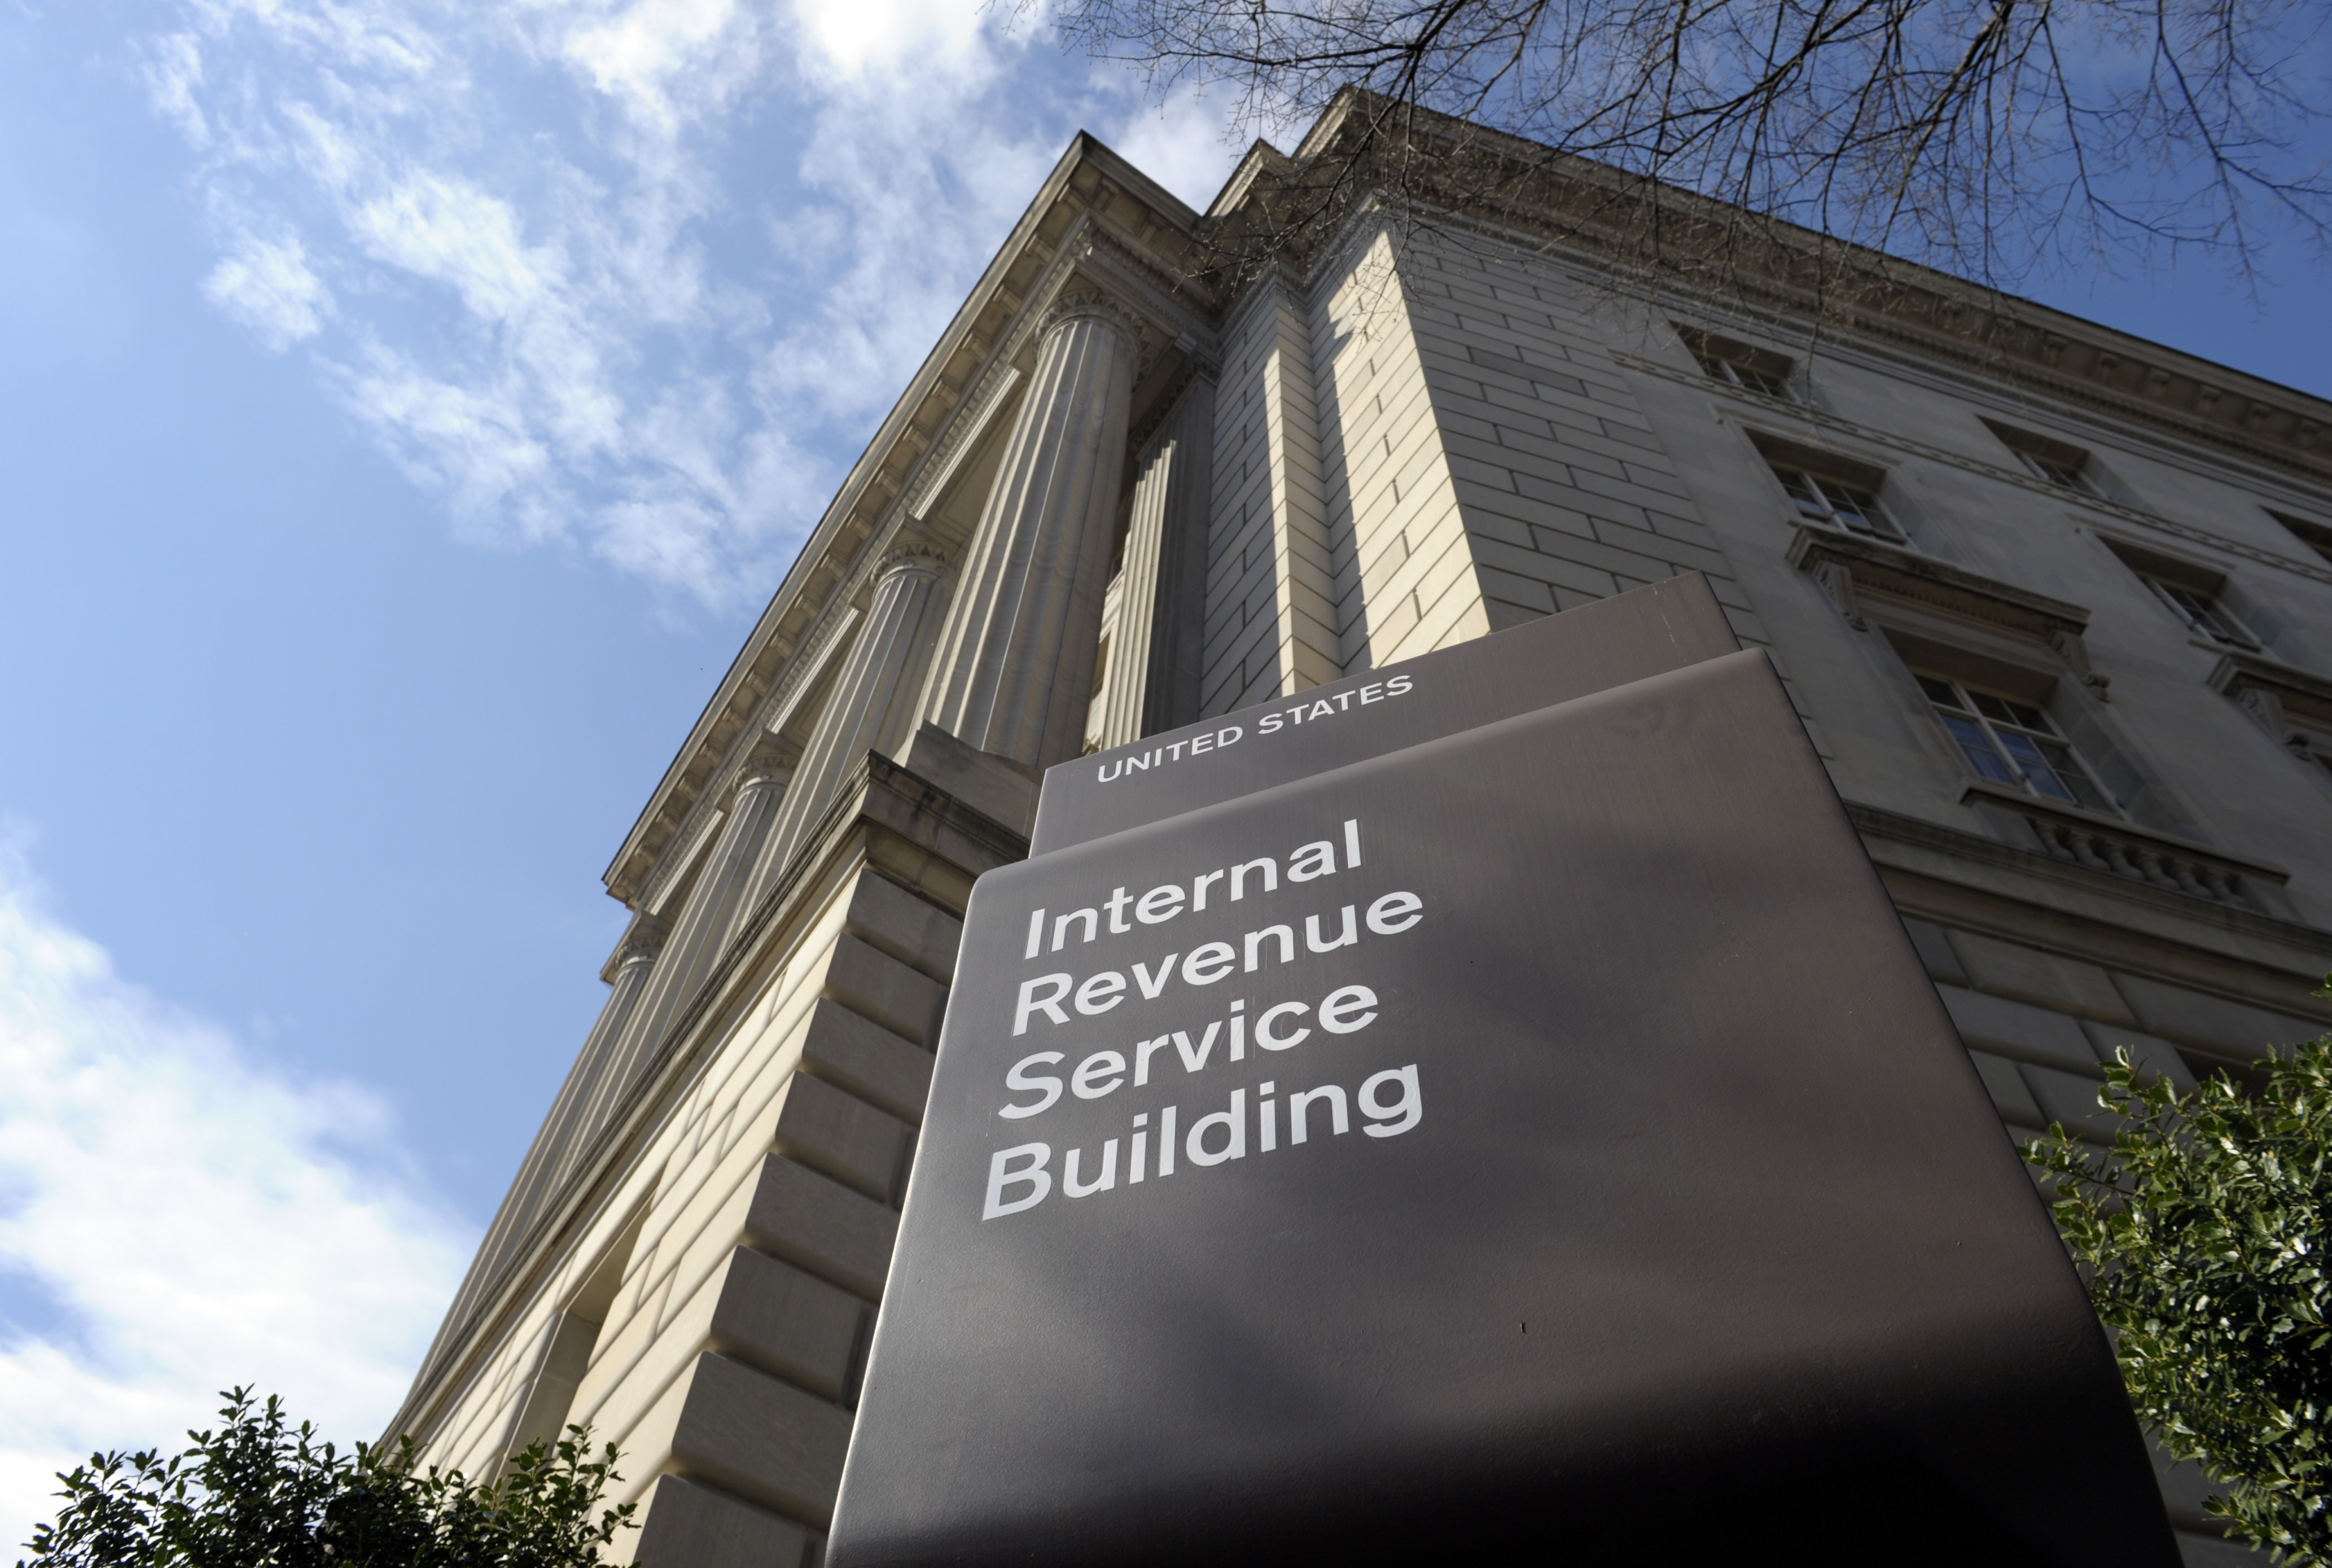 Department of Treasury - IRS